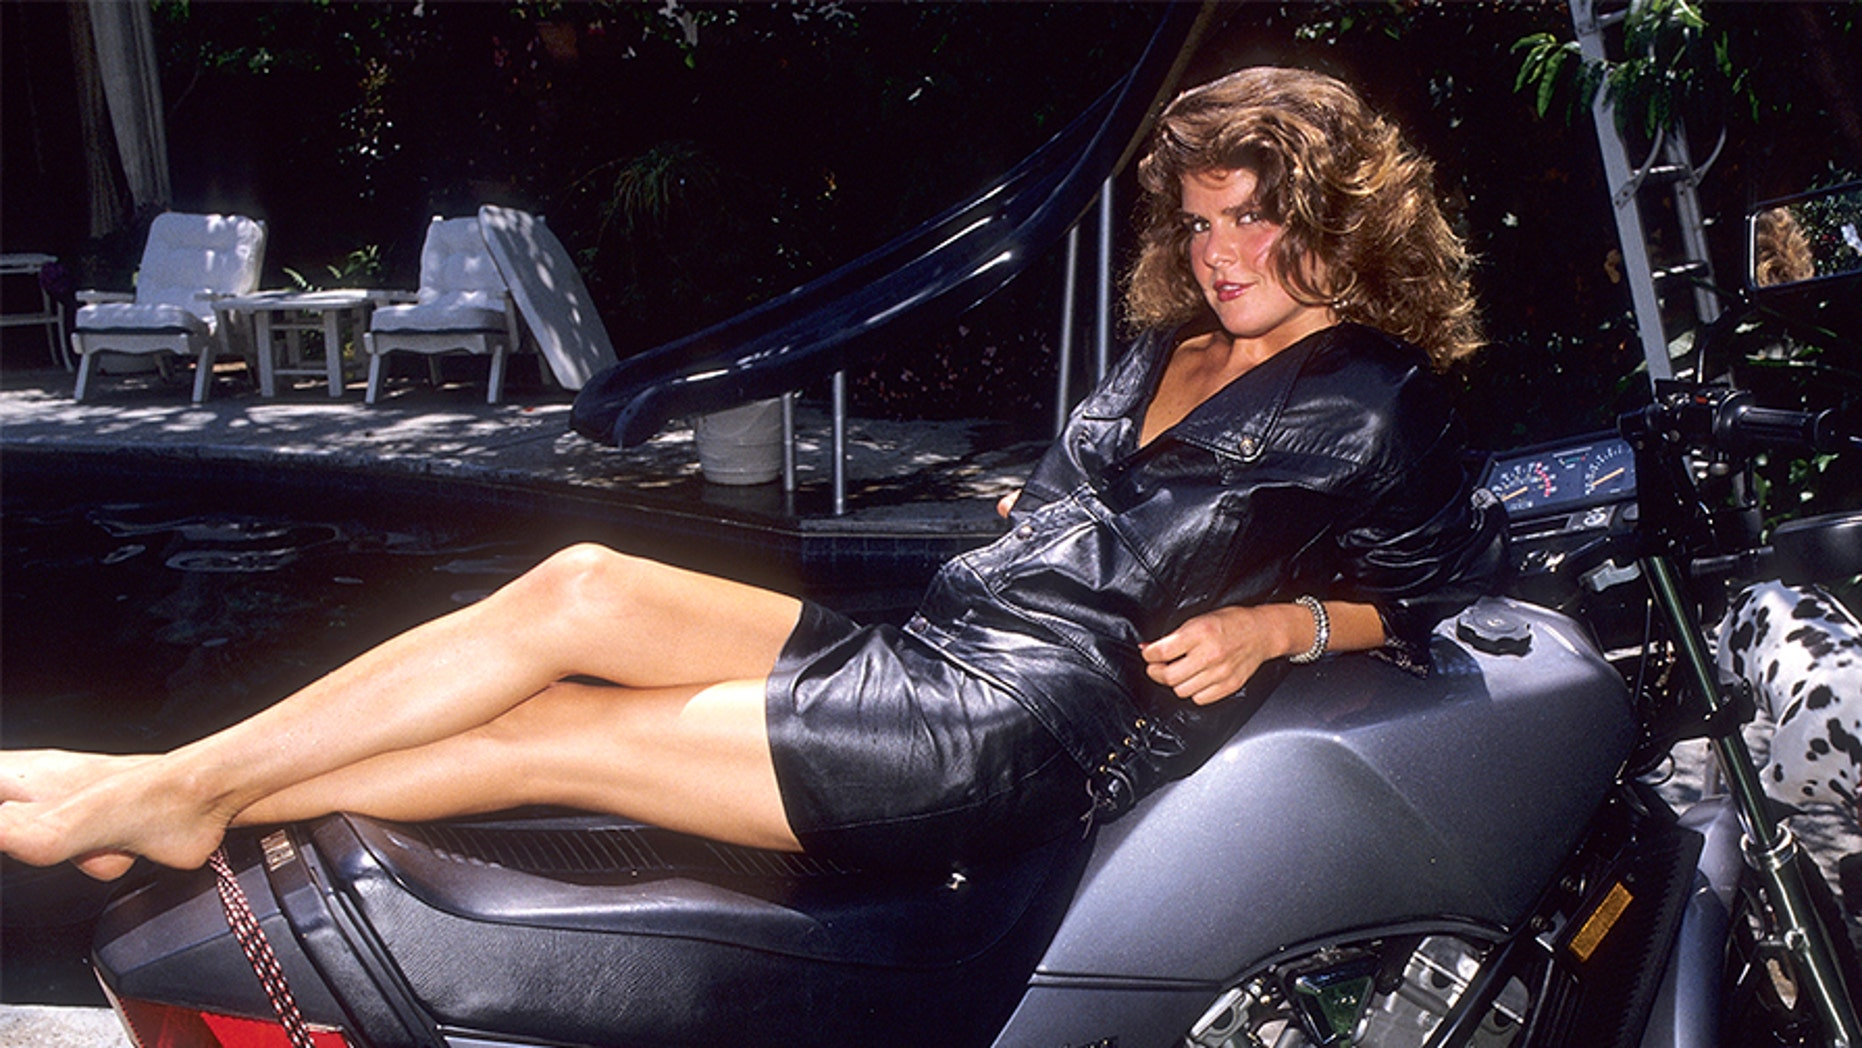 Actress Elizabeth Gorcey gives an exclusive photo session on July 19, 1984 at her home in Beverly Hills, California.